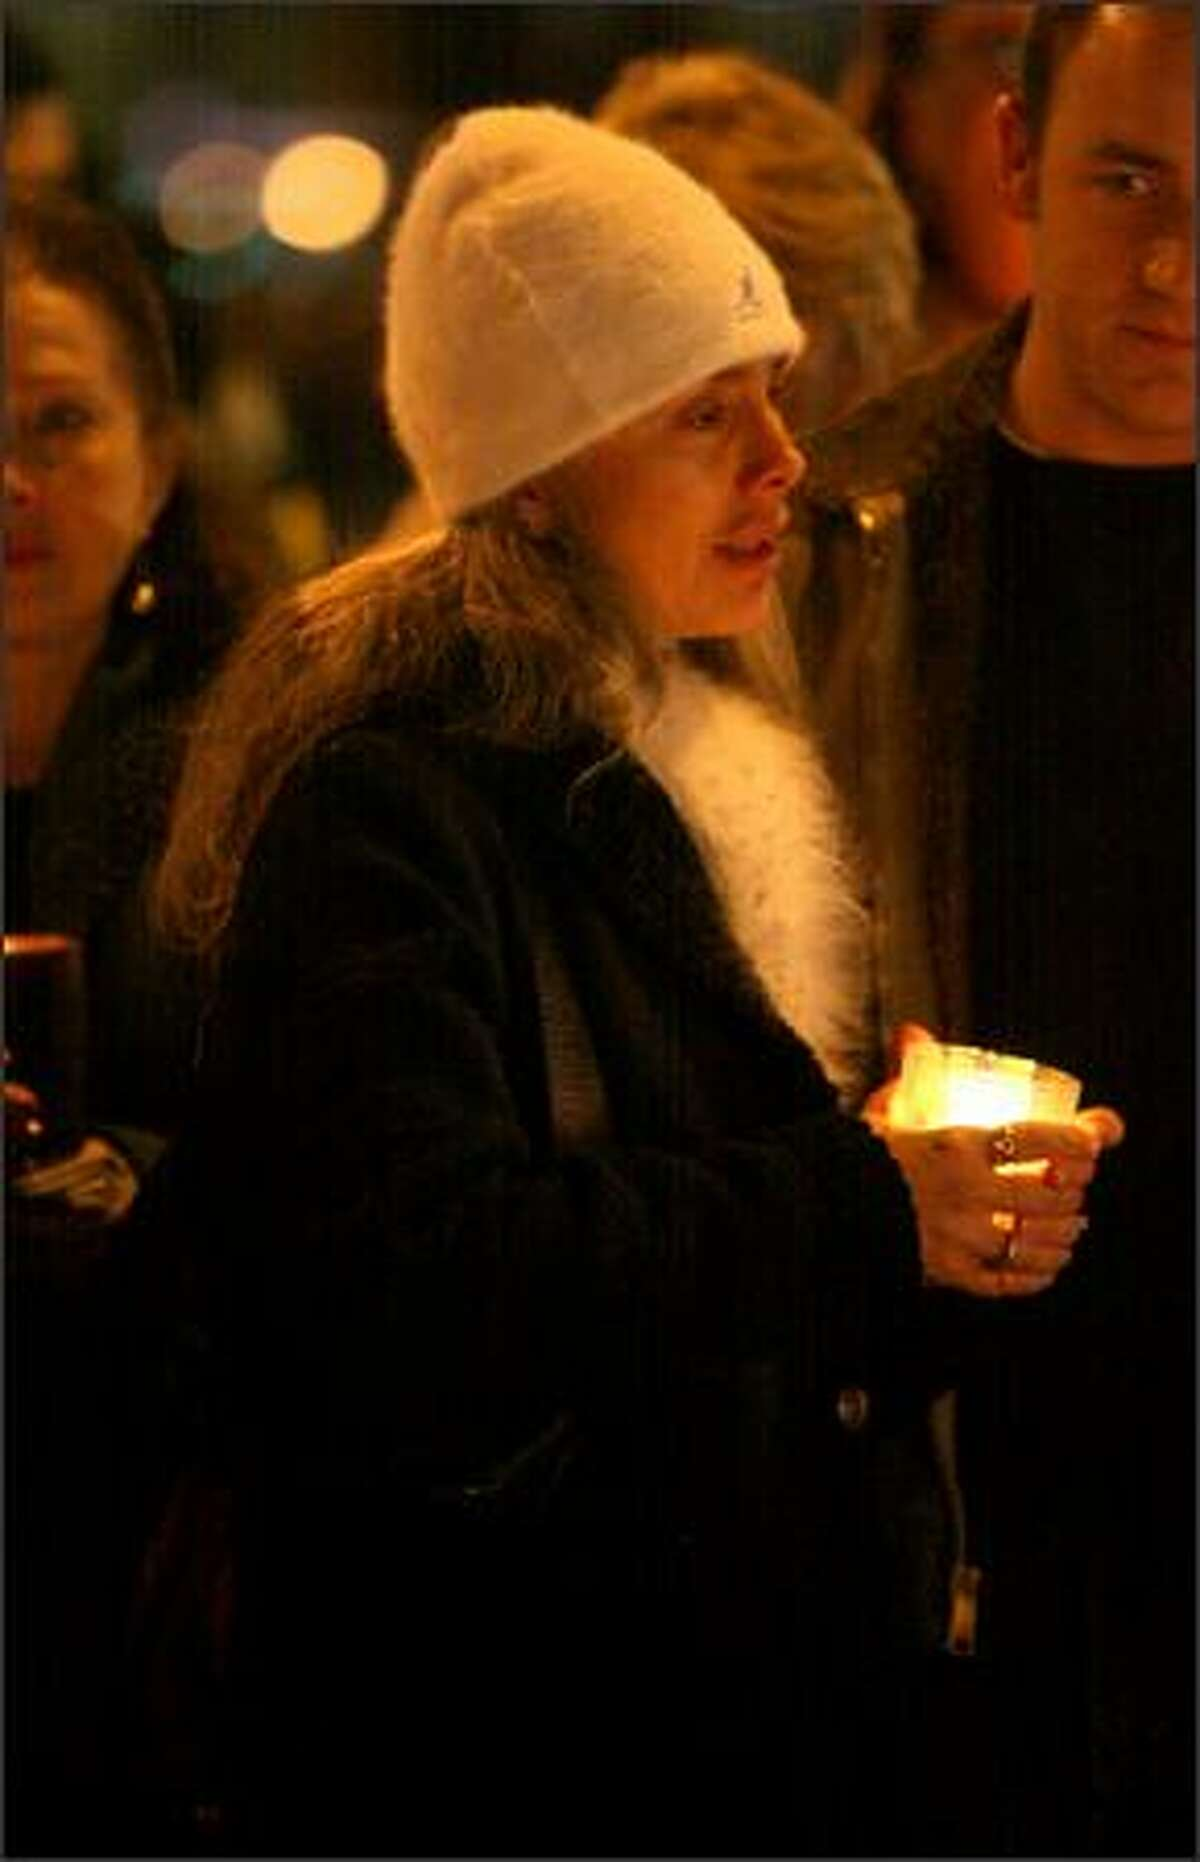 Steve Cox's wife Maria, attends a candlelight vigil and service that were held in front of the King County Sheriff's sub-station in White Center for slain King County Sheriff's Deputy Steve Cox on Tuesday.